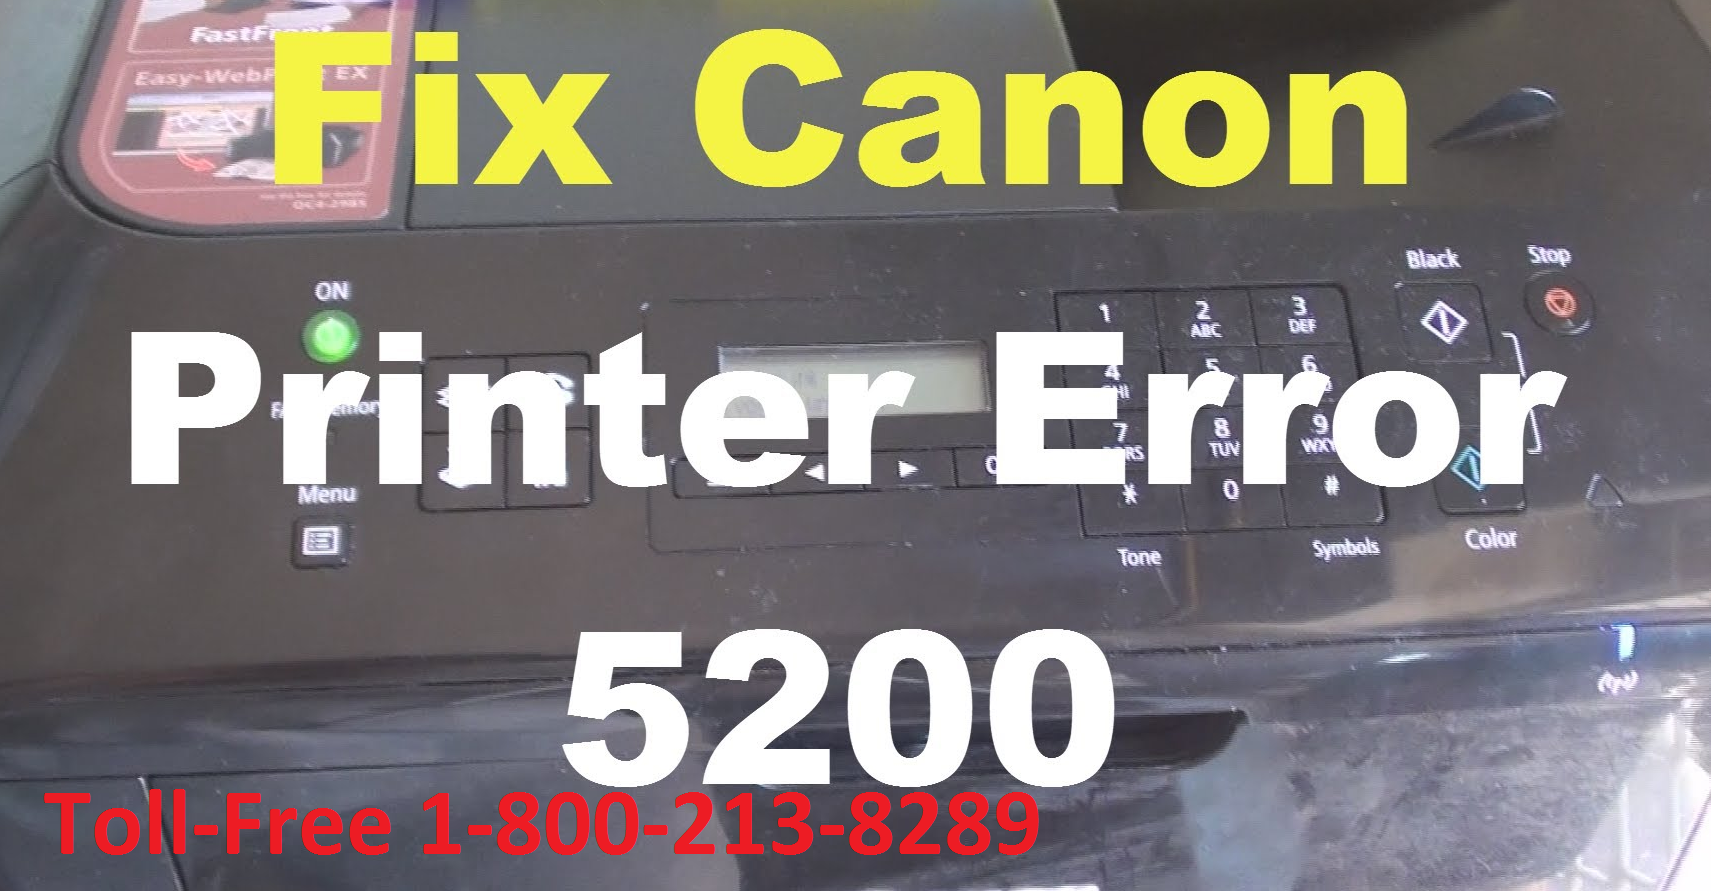 Ccanon printer Error 5200